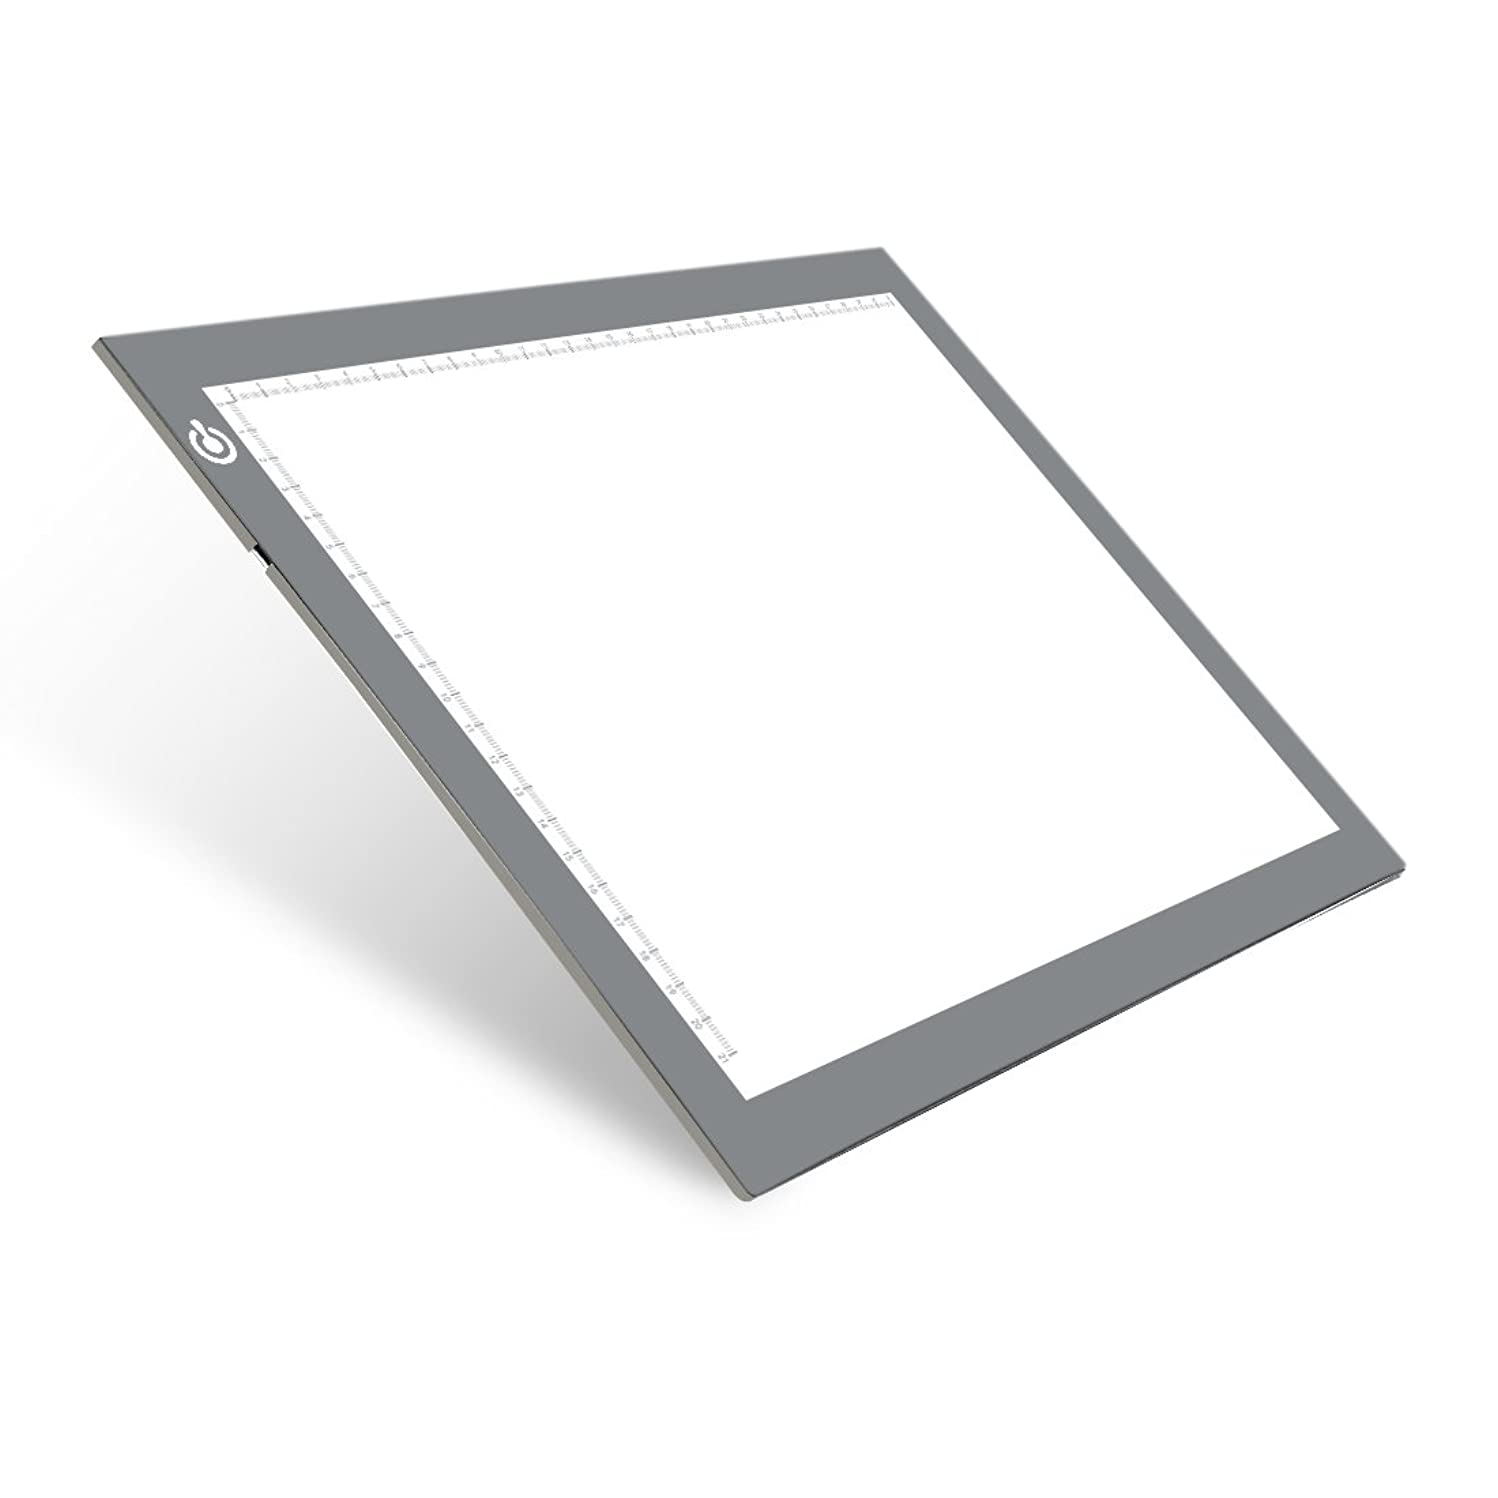 LITENERGY Portable A4 Tracing LED Copy Board Light Box, Silver Ultra-Thin Adjustable USB Power Artcraft LED Trace Light Pad for Tattoo Drawing, Streaming, Sketching, Animation, Stenciling